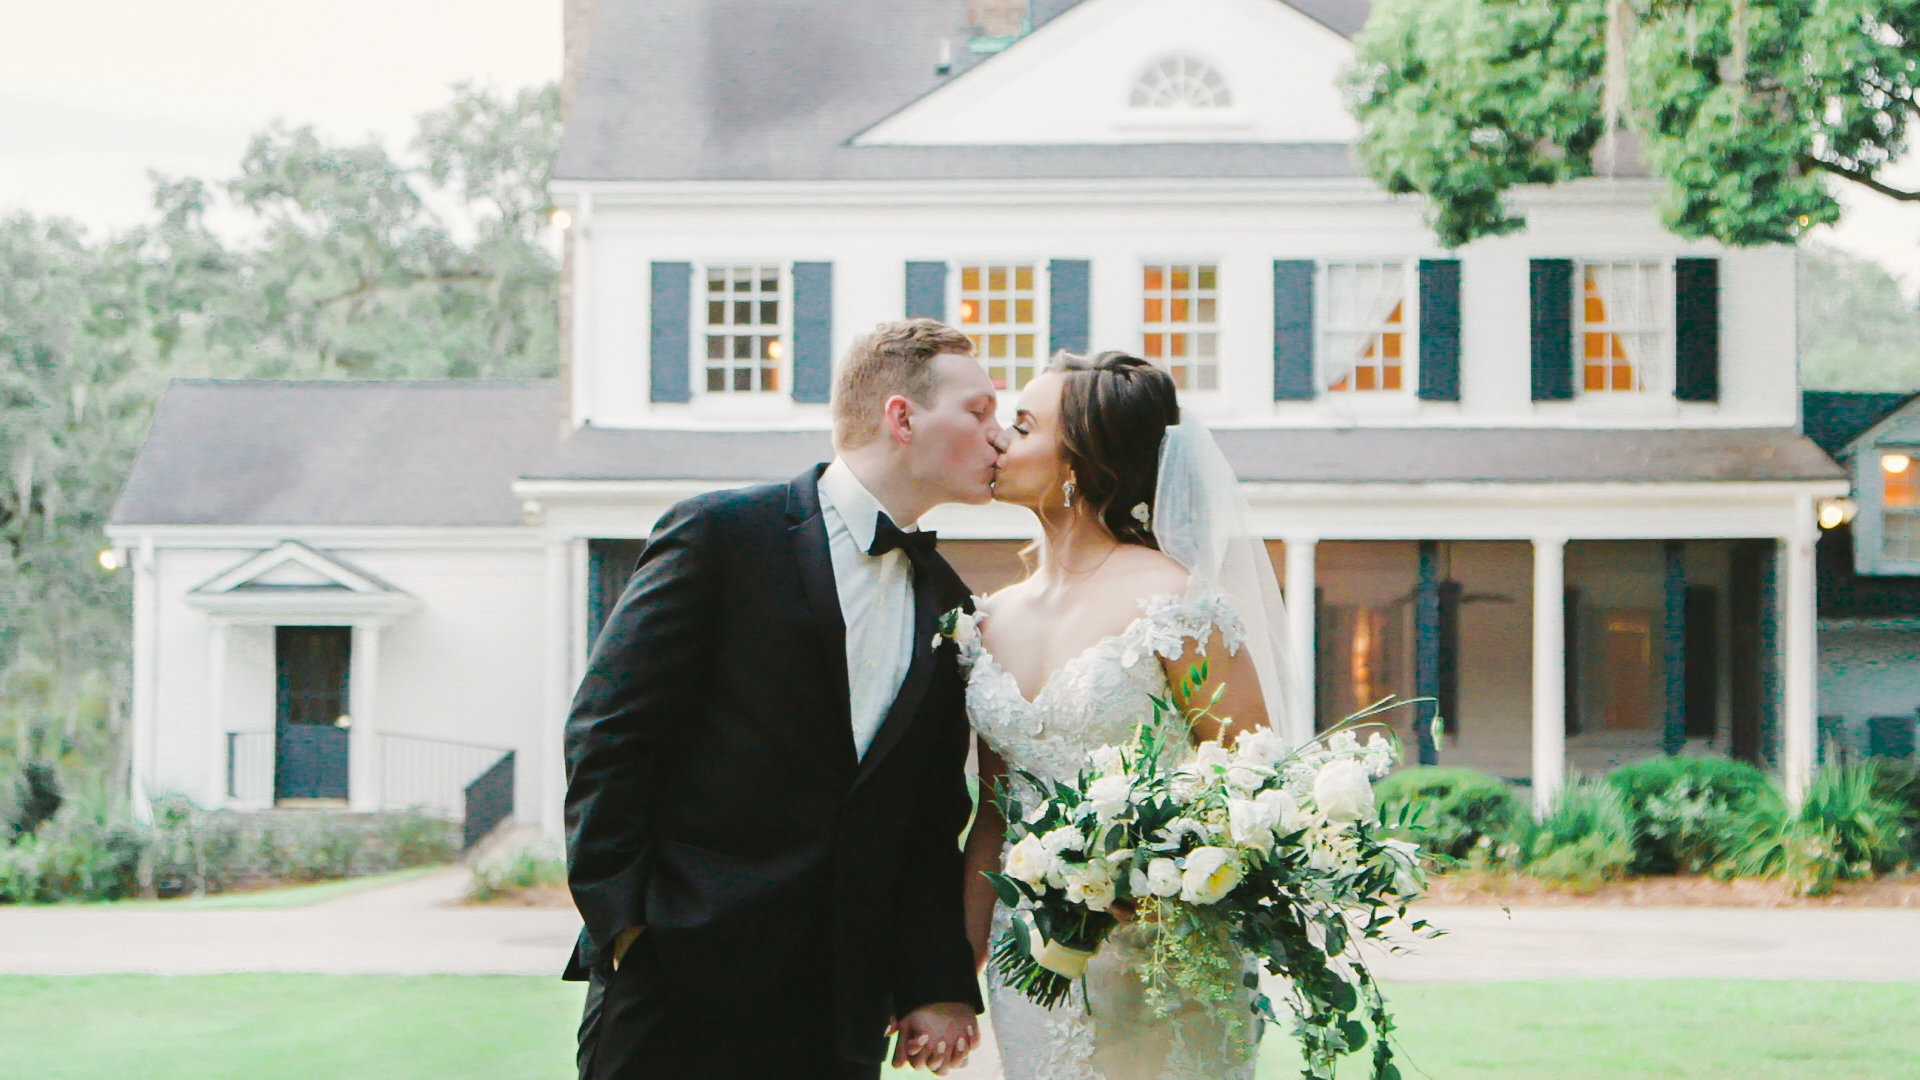 Elizabeth + Dustin | Charleston, South Carolina | The Legare Waring House